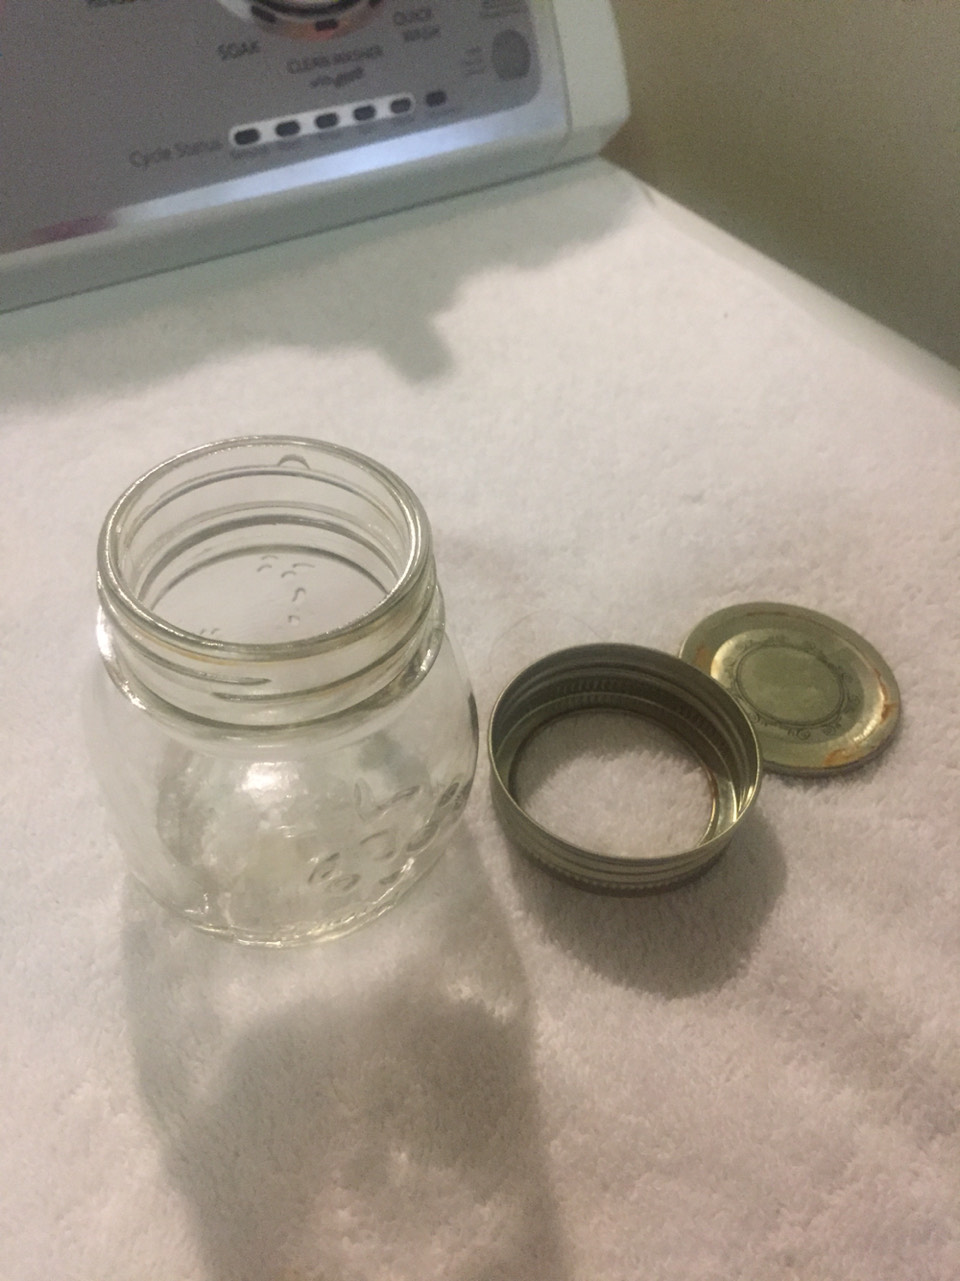 A jar or something to hold the rest of the ingredients